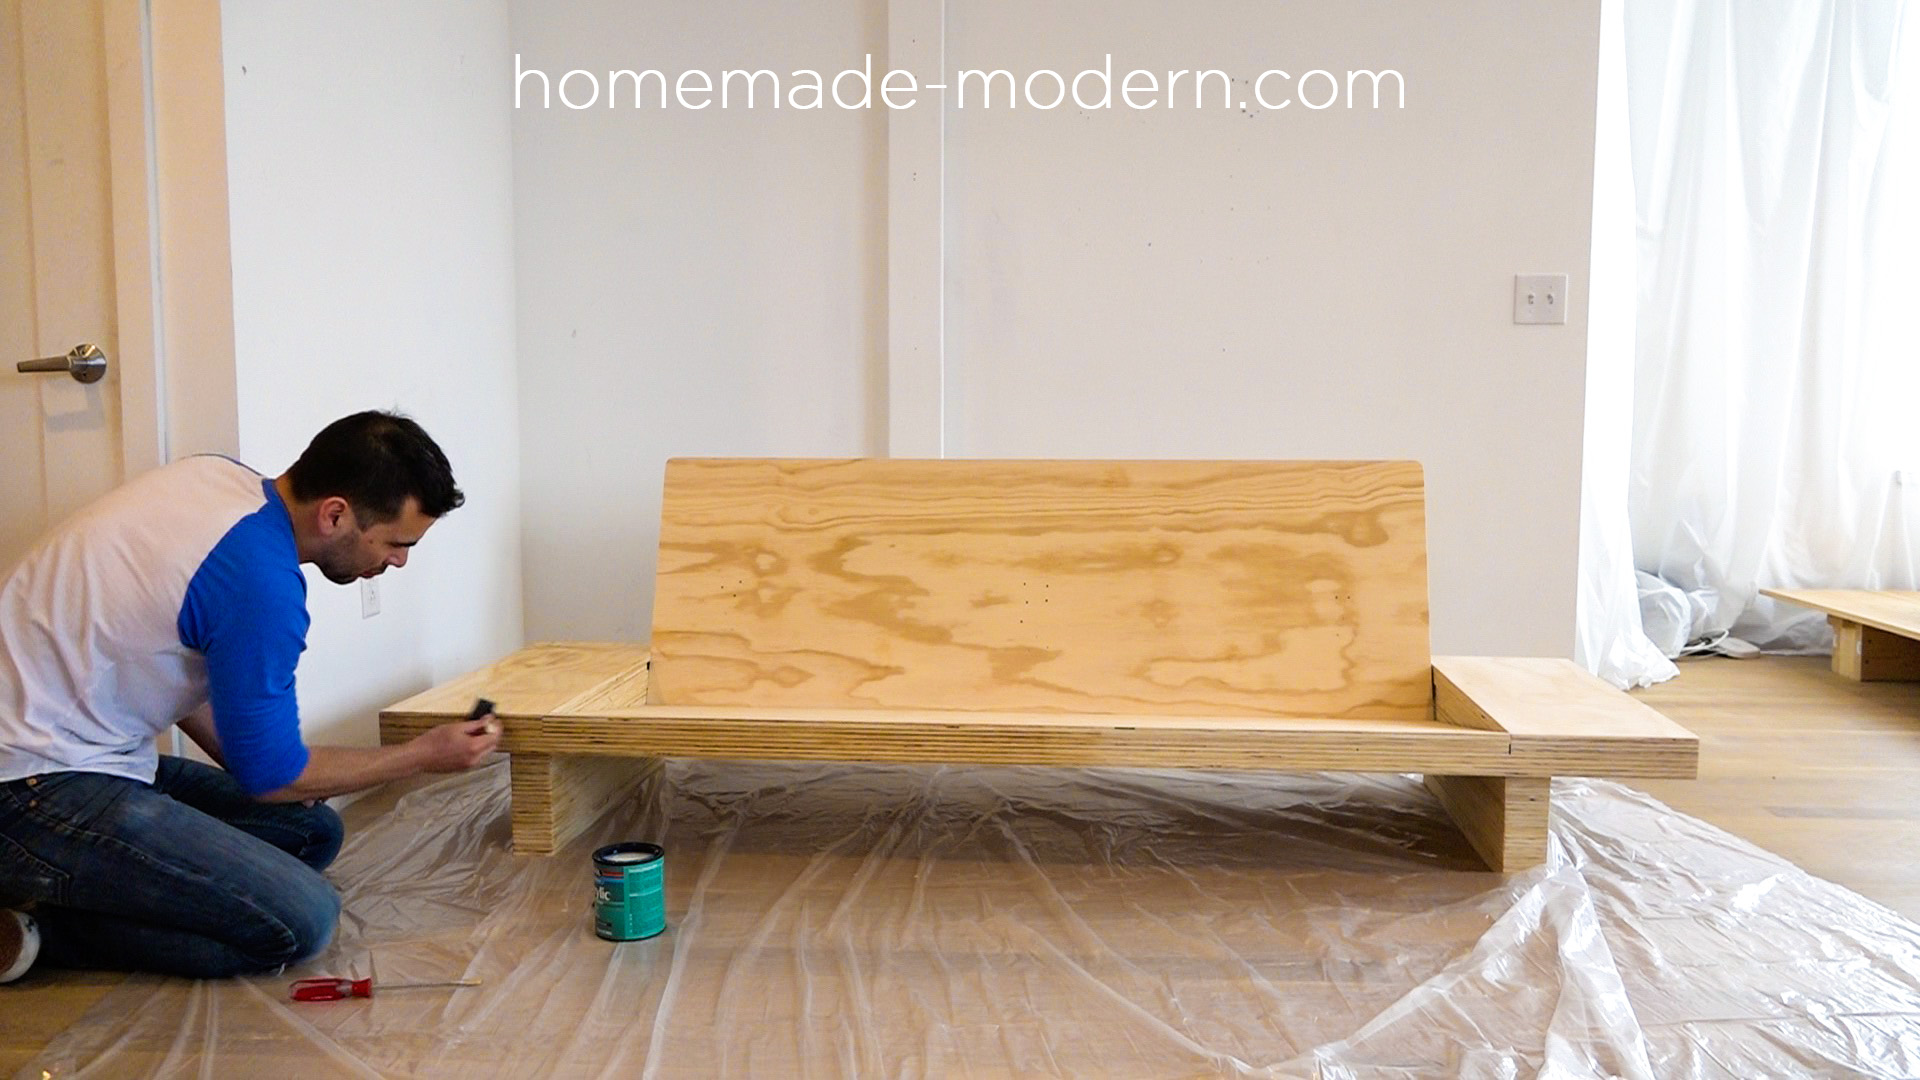 Homemade modern ep111 plywood table for Homemade diy